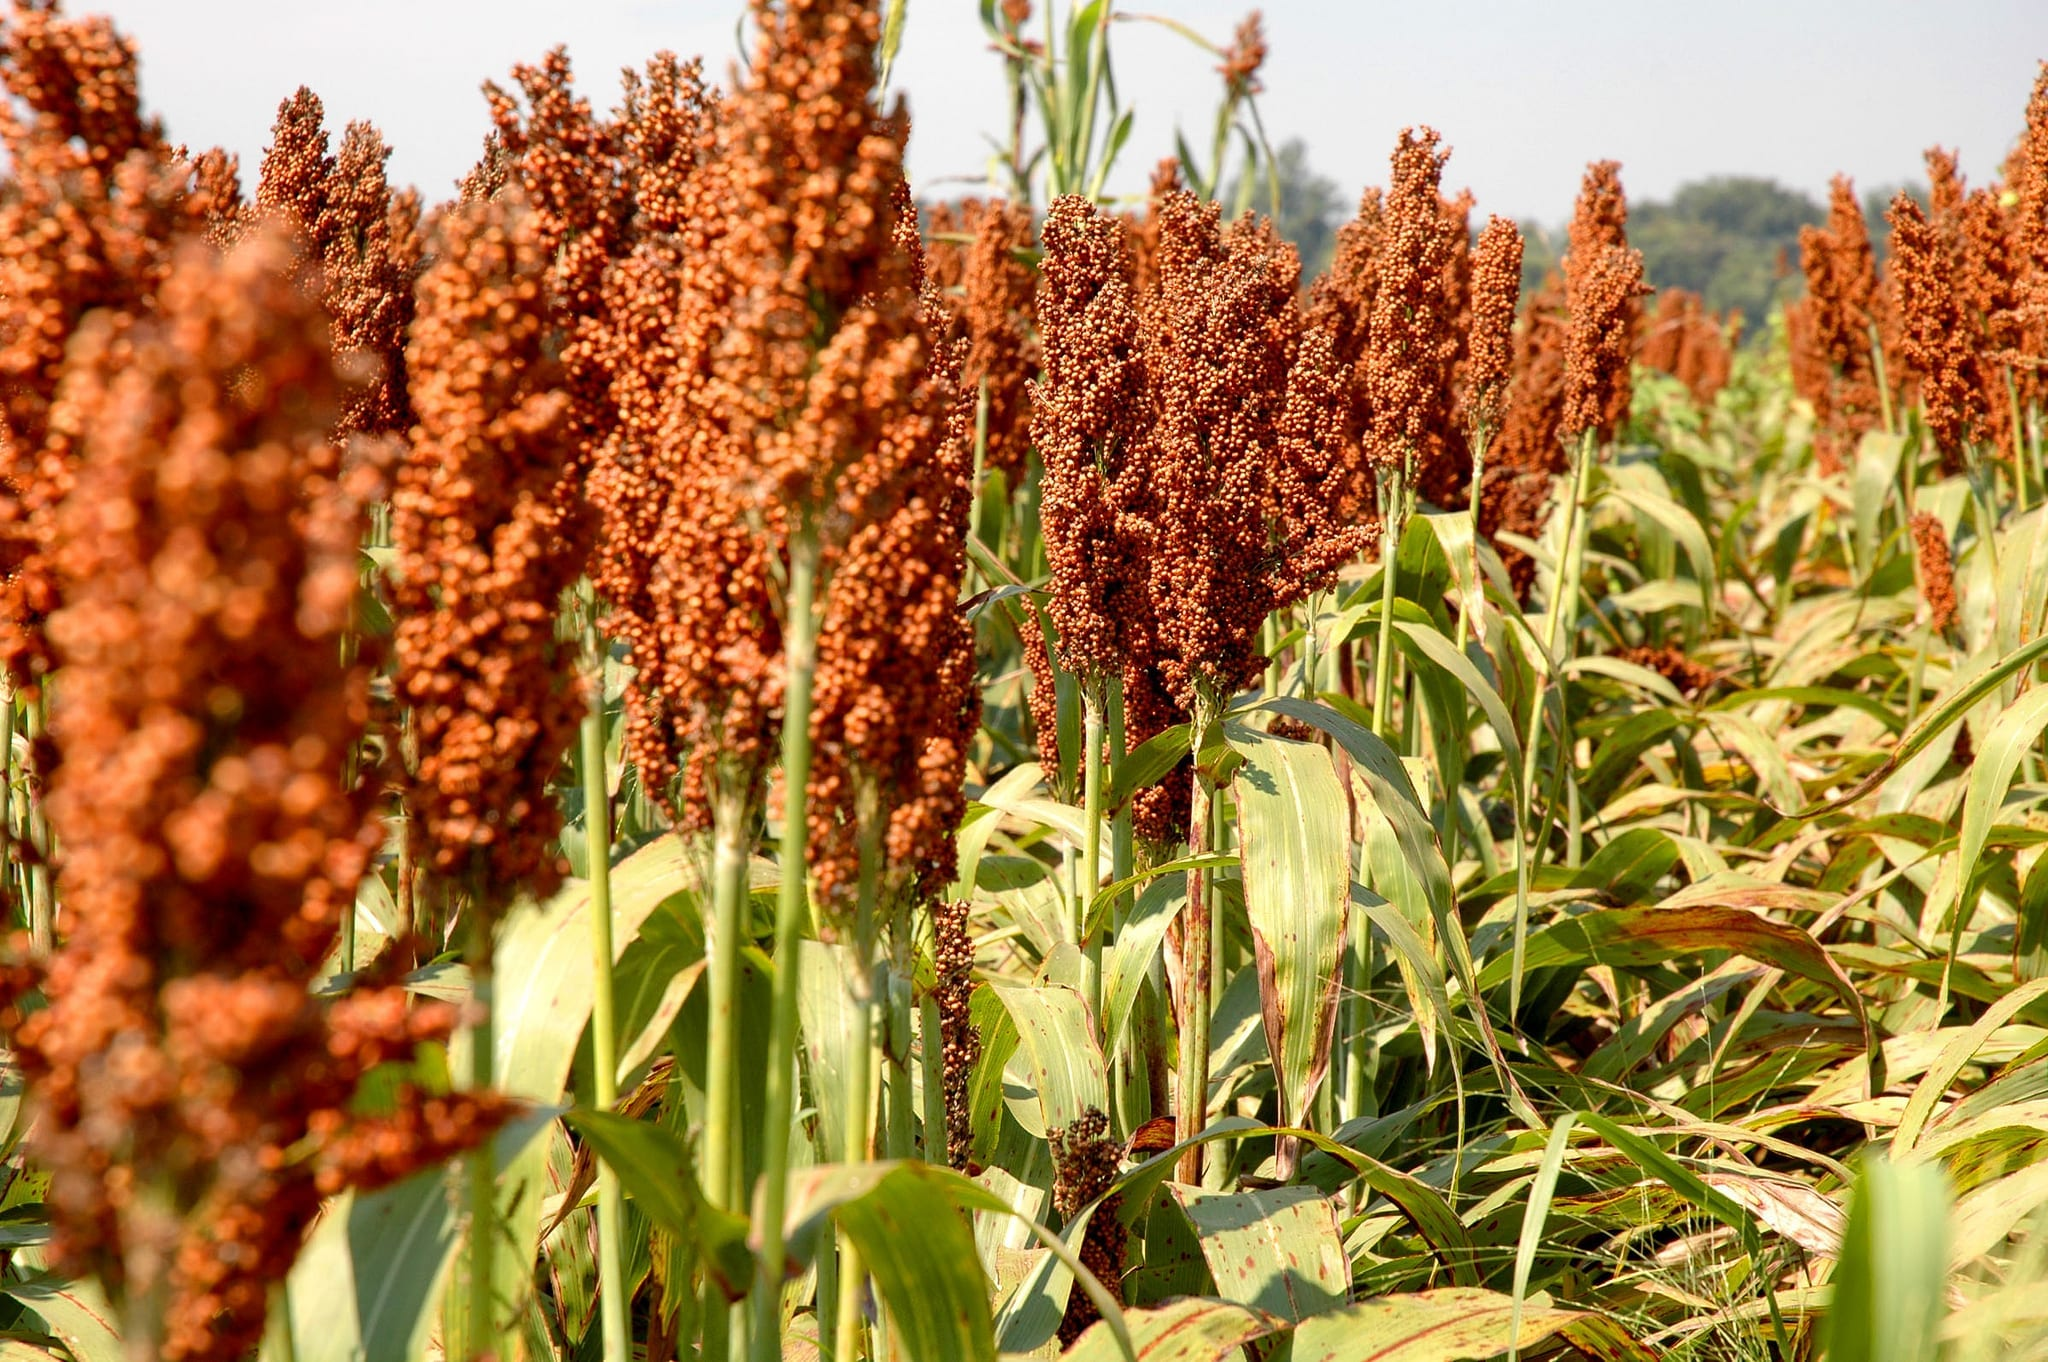 grain-sorghum-large